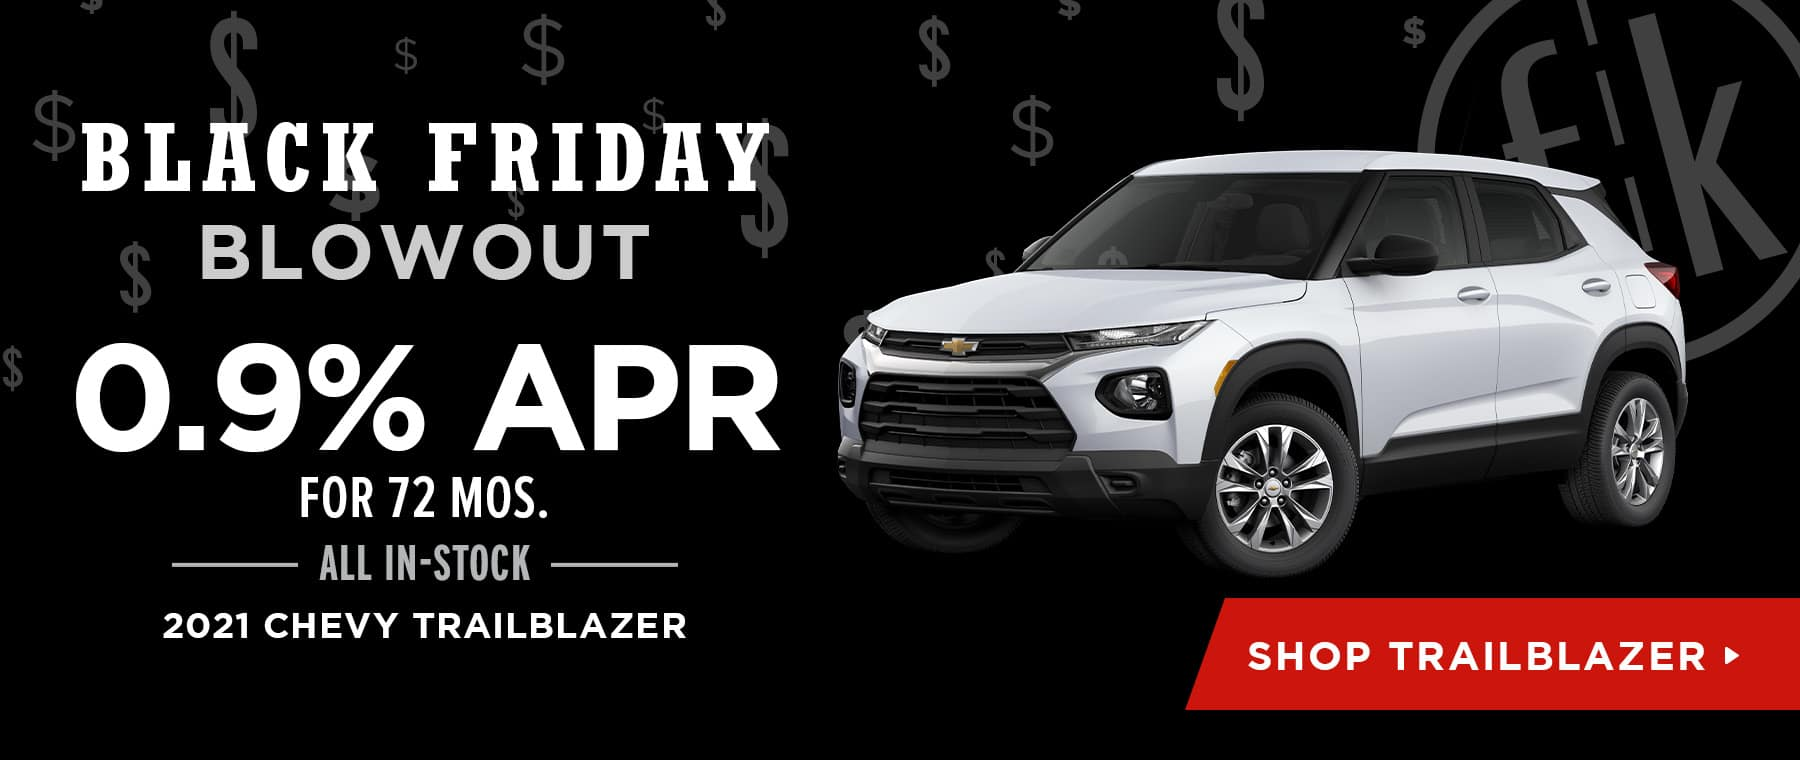 0.9% for 72 mos. All In-Stock 2020 Chevy Trailblazer